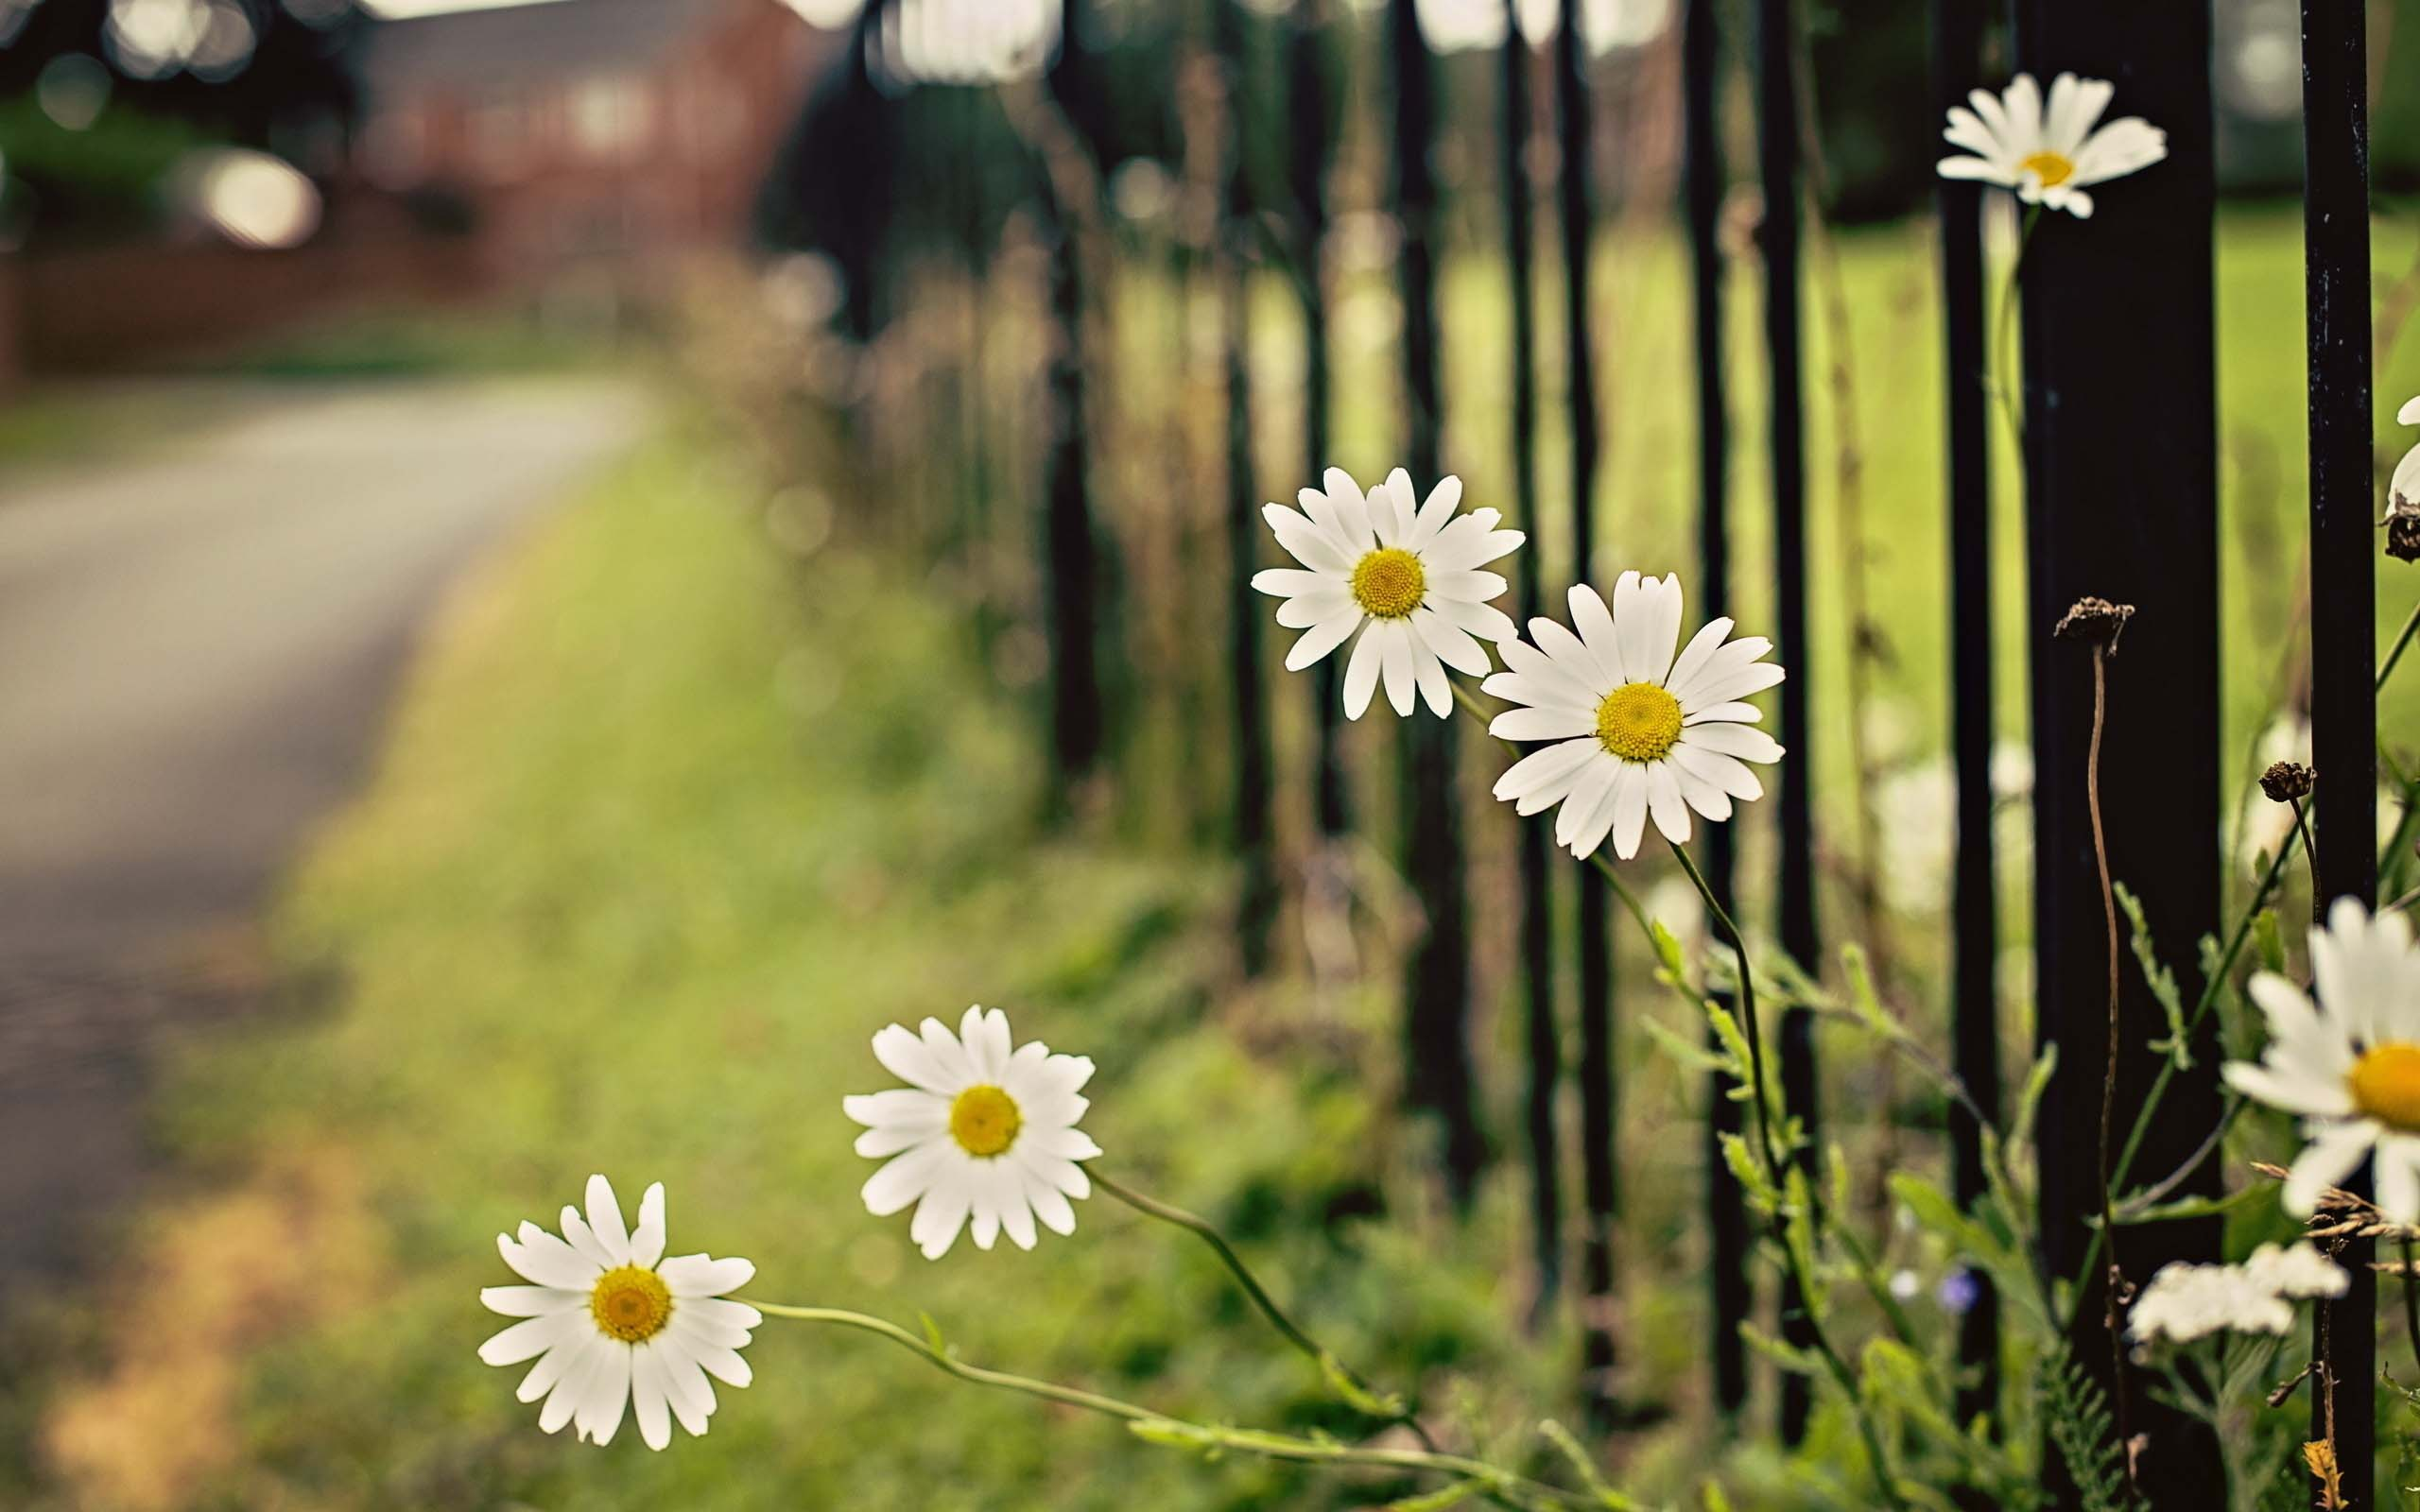 daisy next to the fence wide road side views images download